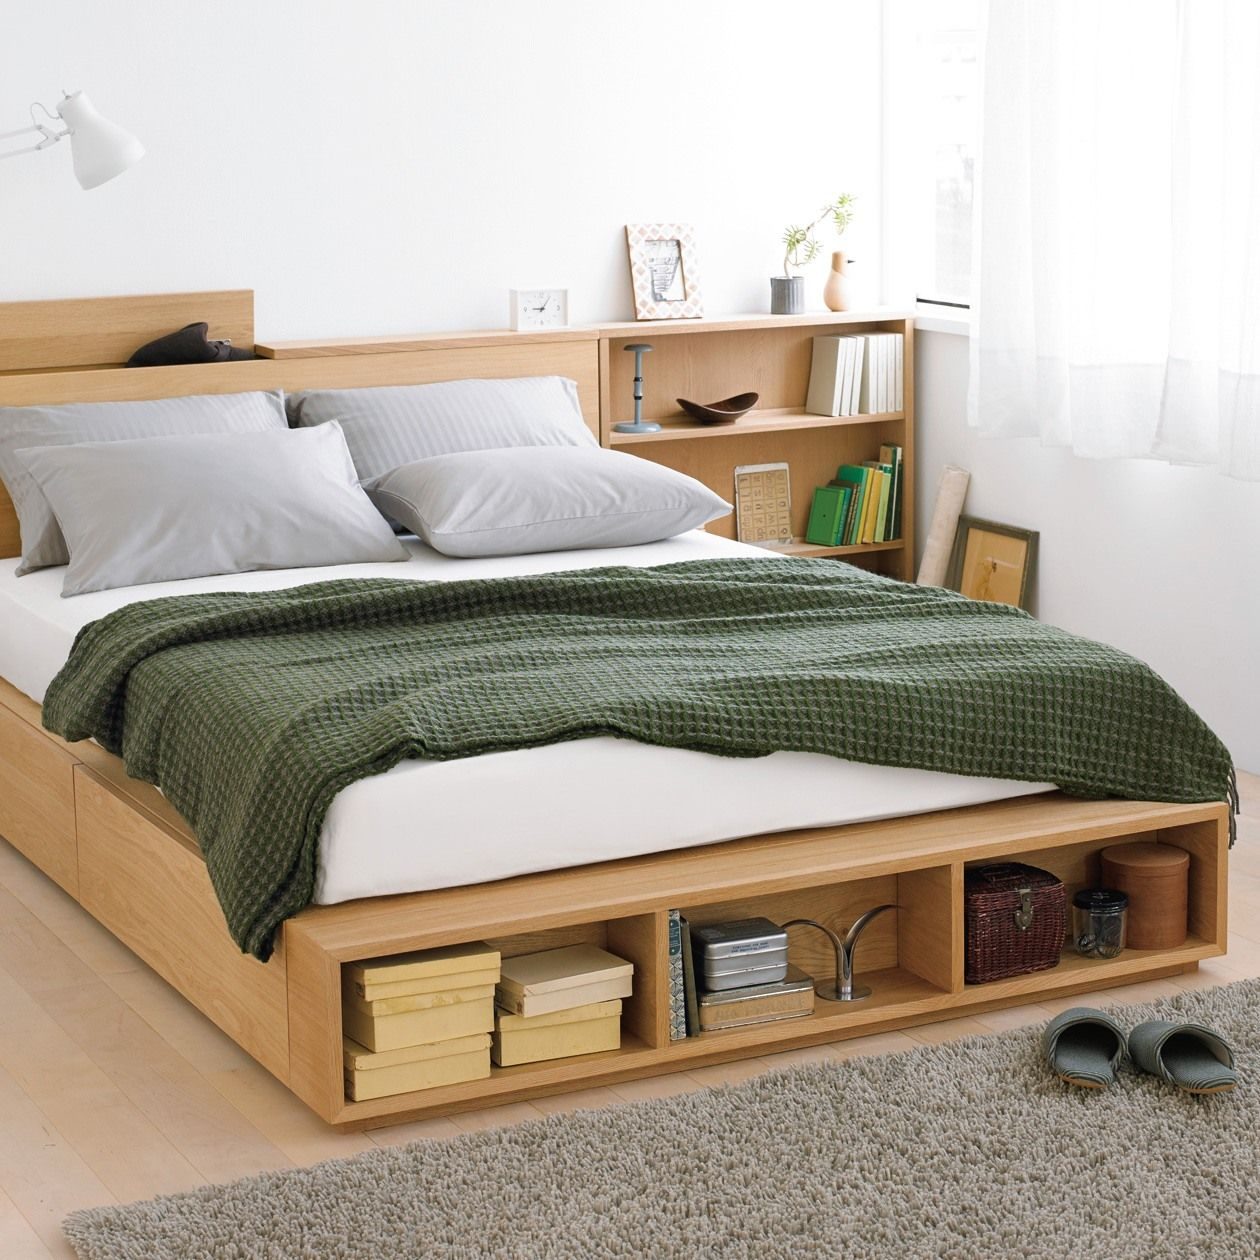 10 Easy Pieces: Storage Beds | Pinterest | Muji, Bedside storage and ...